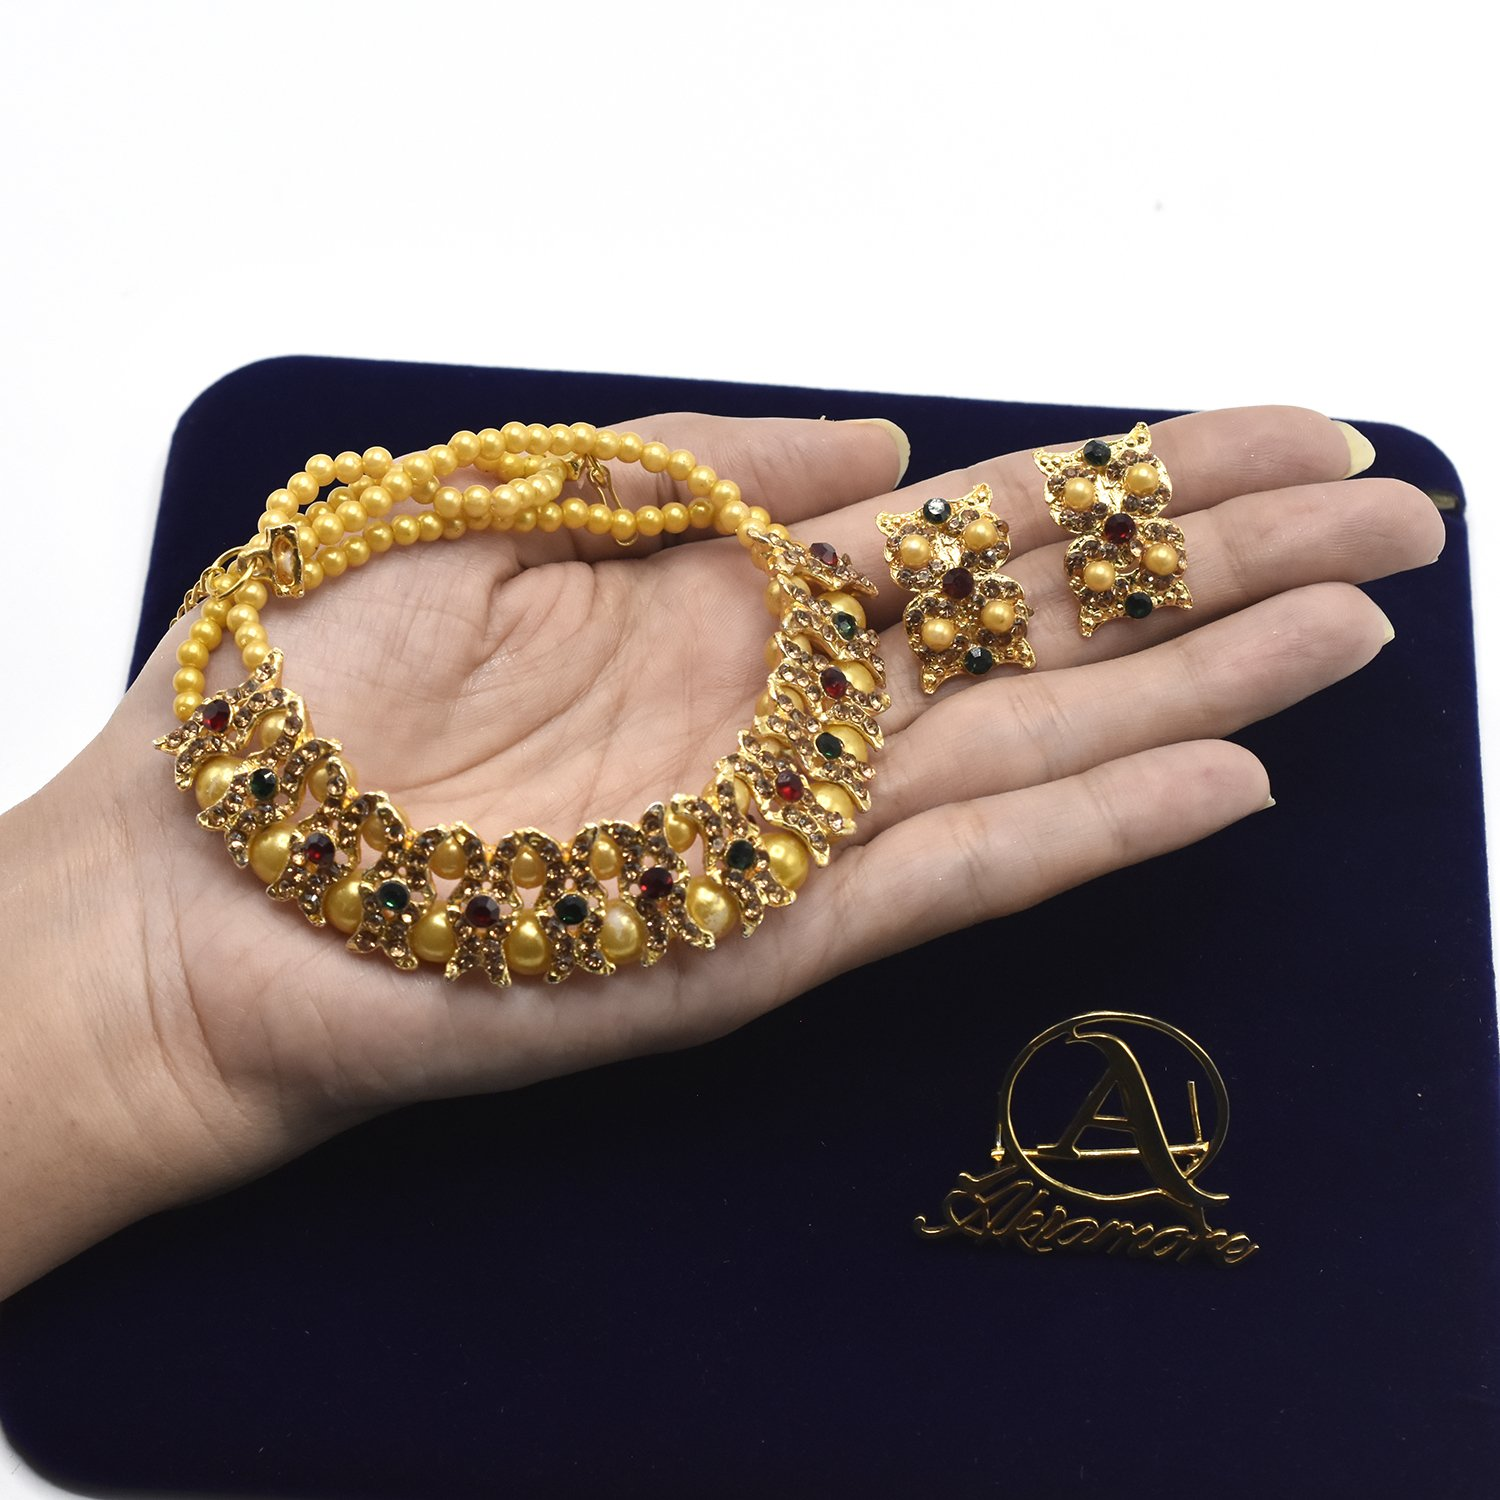 Golden Imitation Pearl Wedding Necklace Earring Sets Party Jewelry Sets for Women Elegant Party Gift Fashion Jewellery